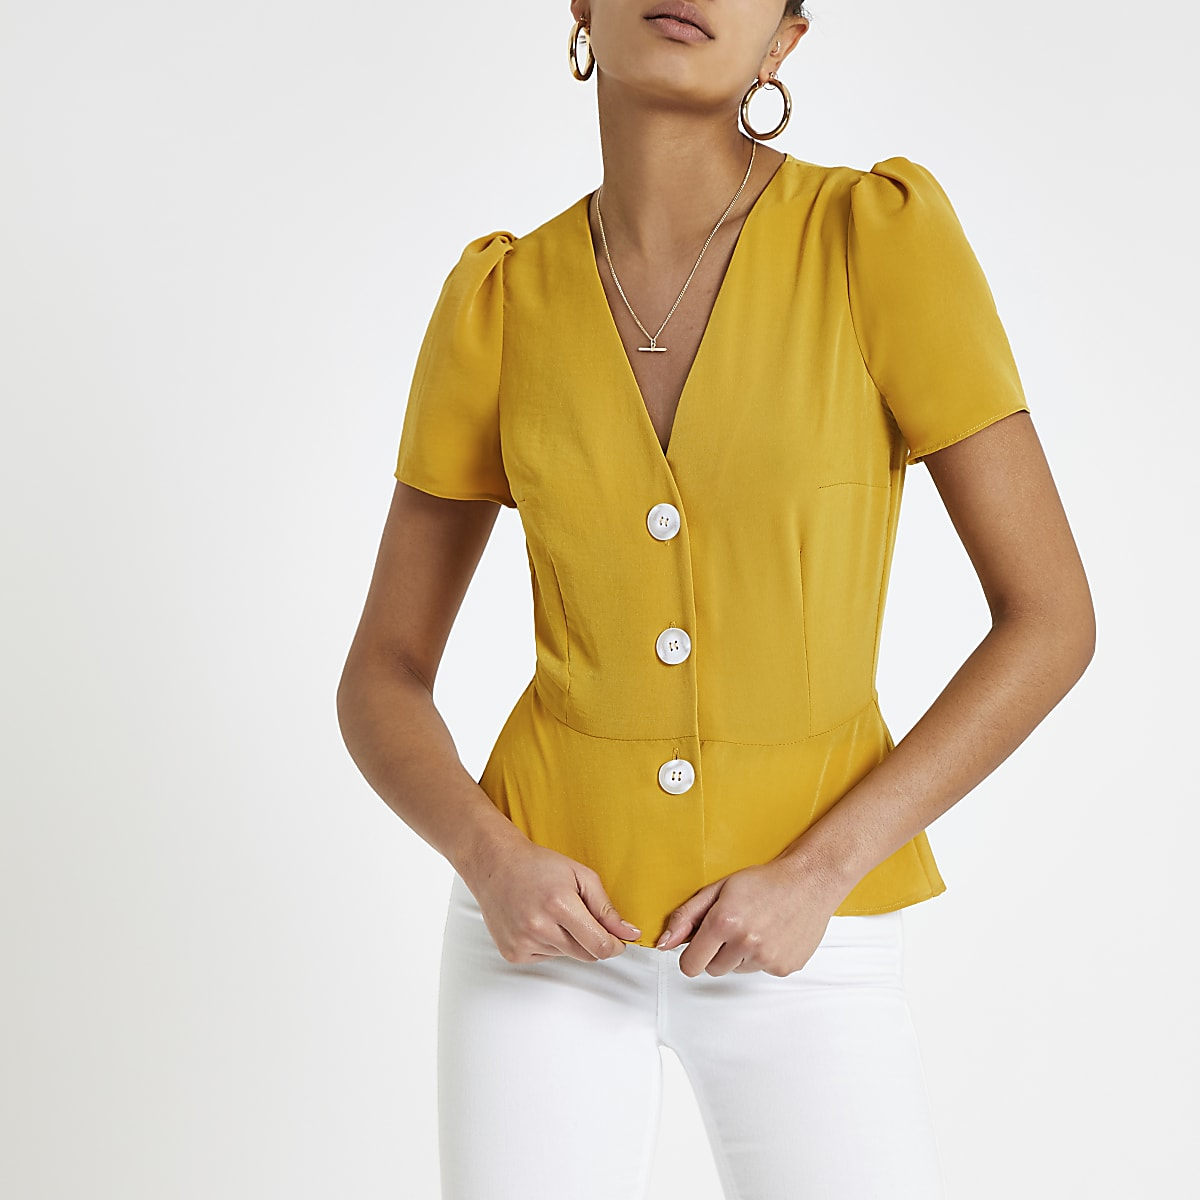 667c0a38c8f5d Yellow button front tea top - Blouses - Tops - women